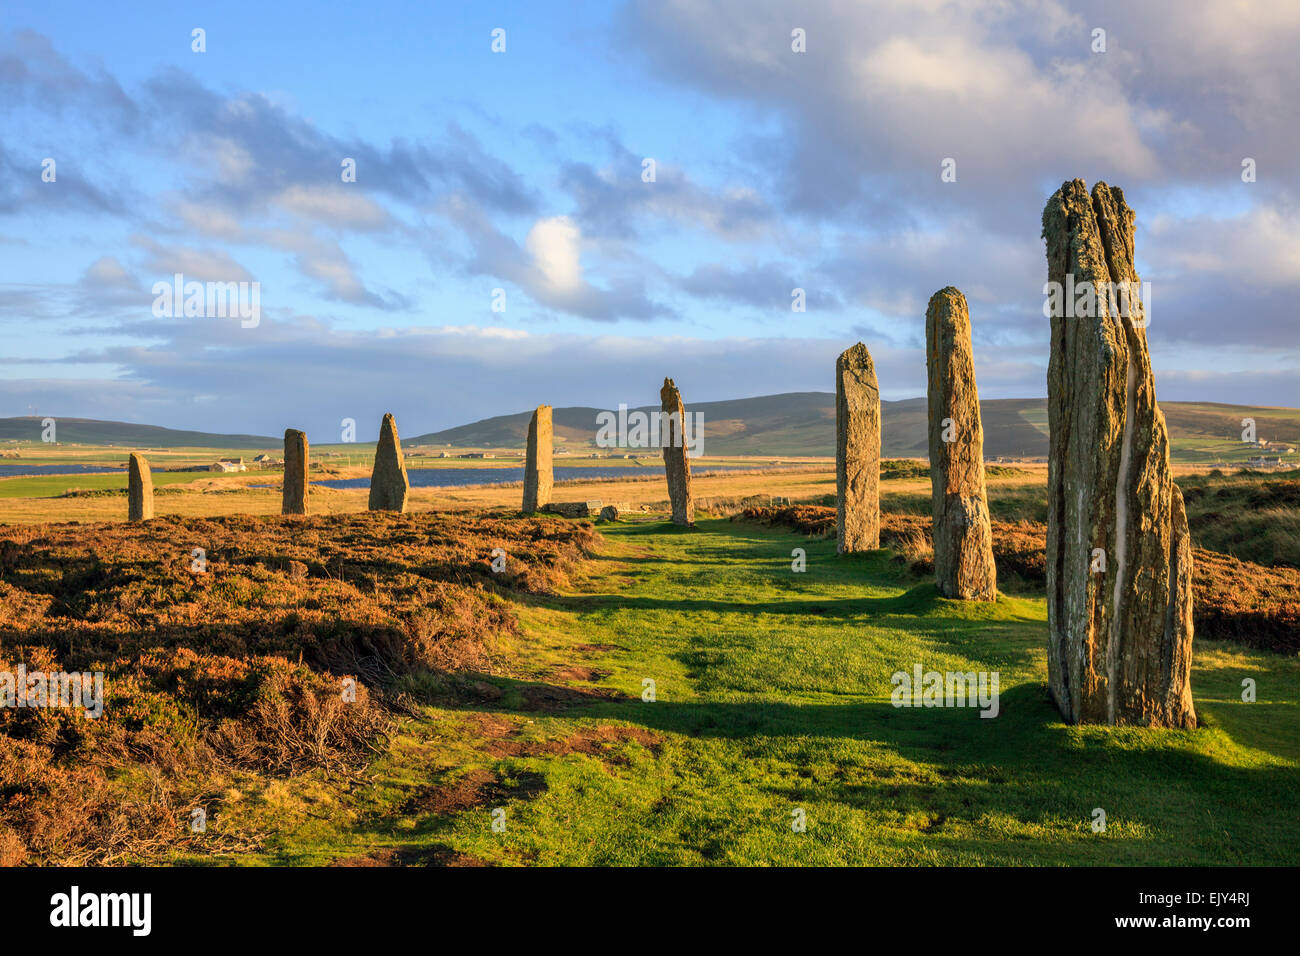 The Ring of Brodgar stone circle on Mainland Orkney. - Stock Image